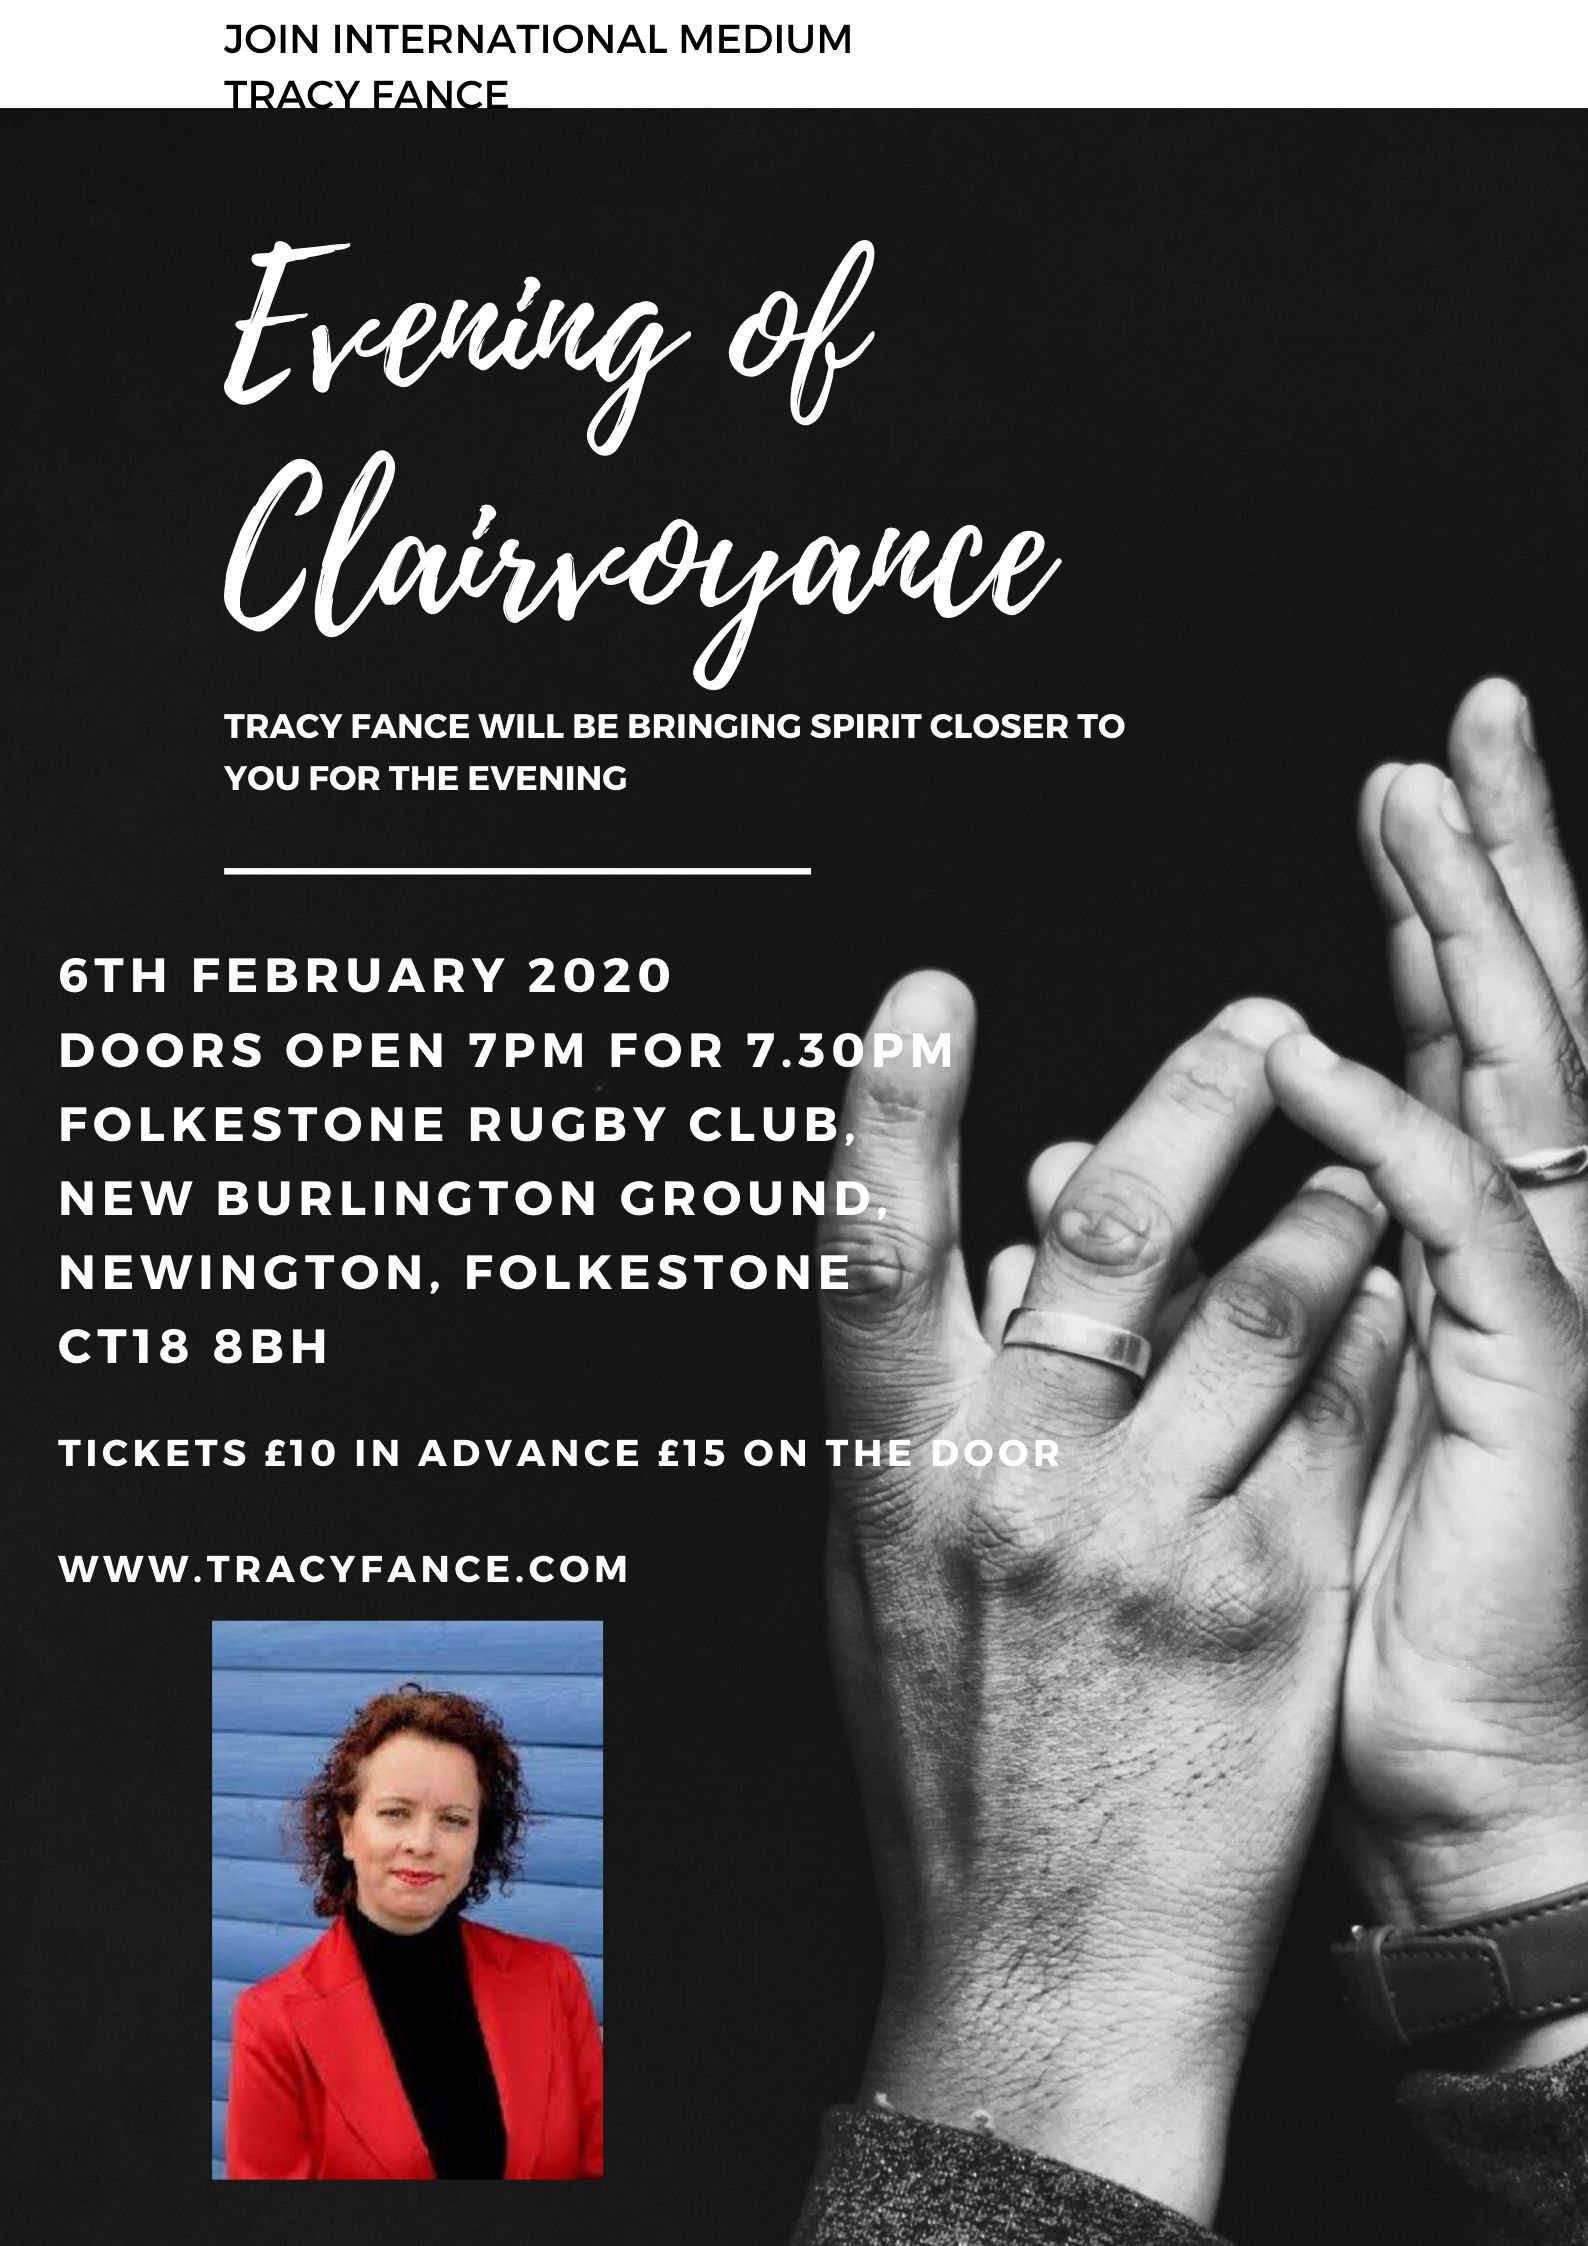 Evening of Clairvoyance with Tracy Fance Poster